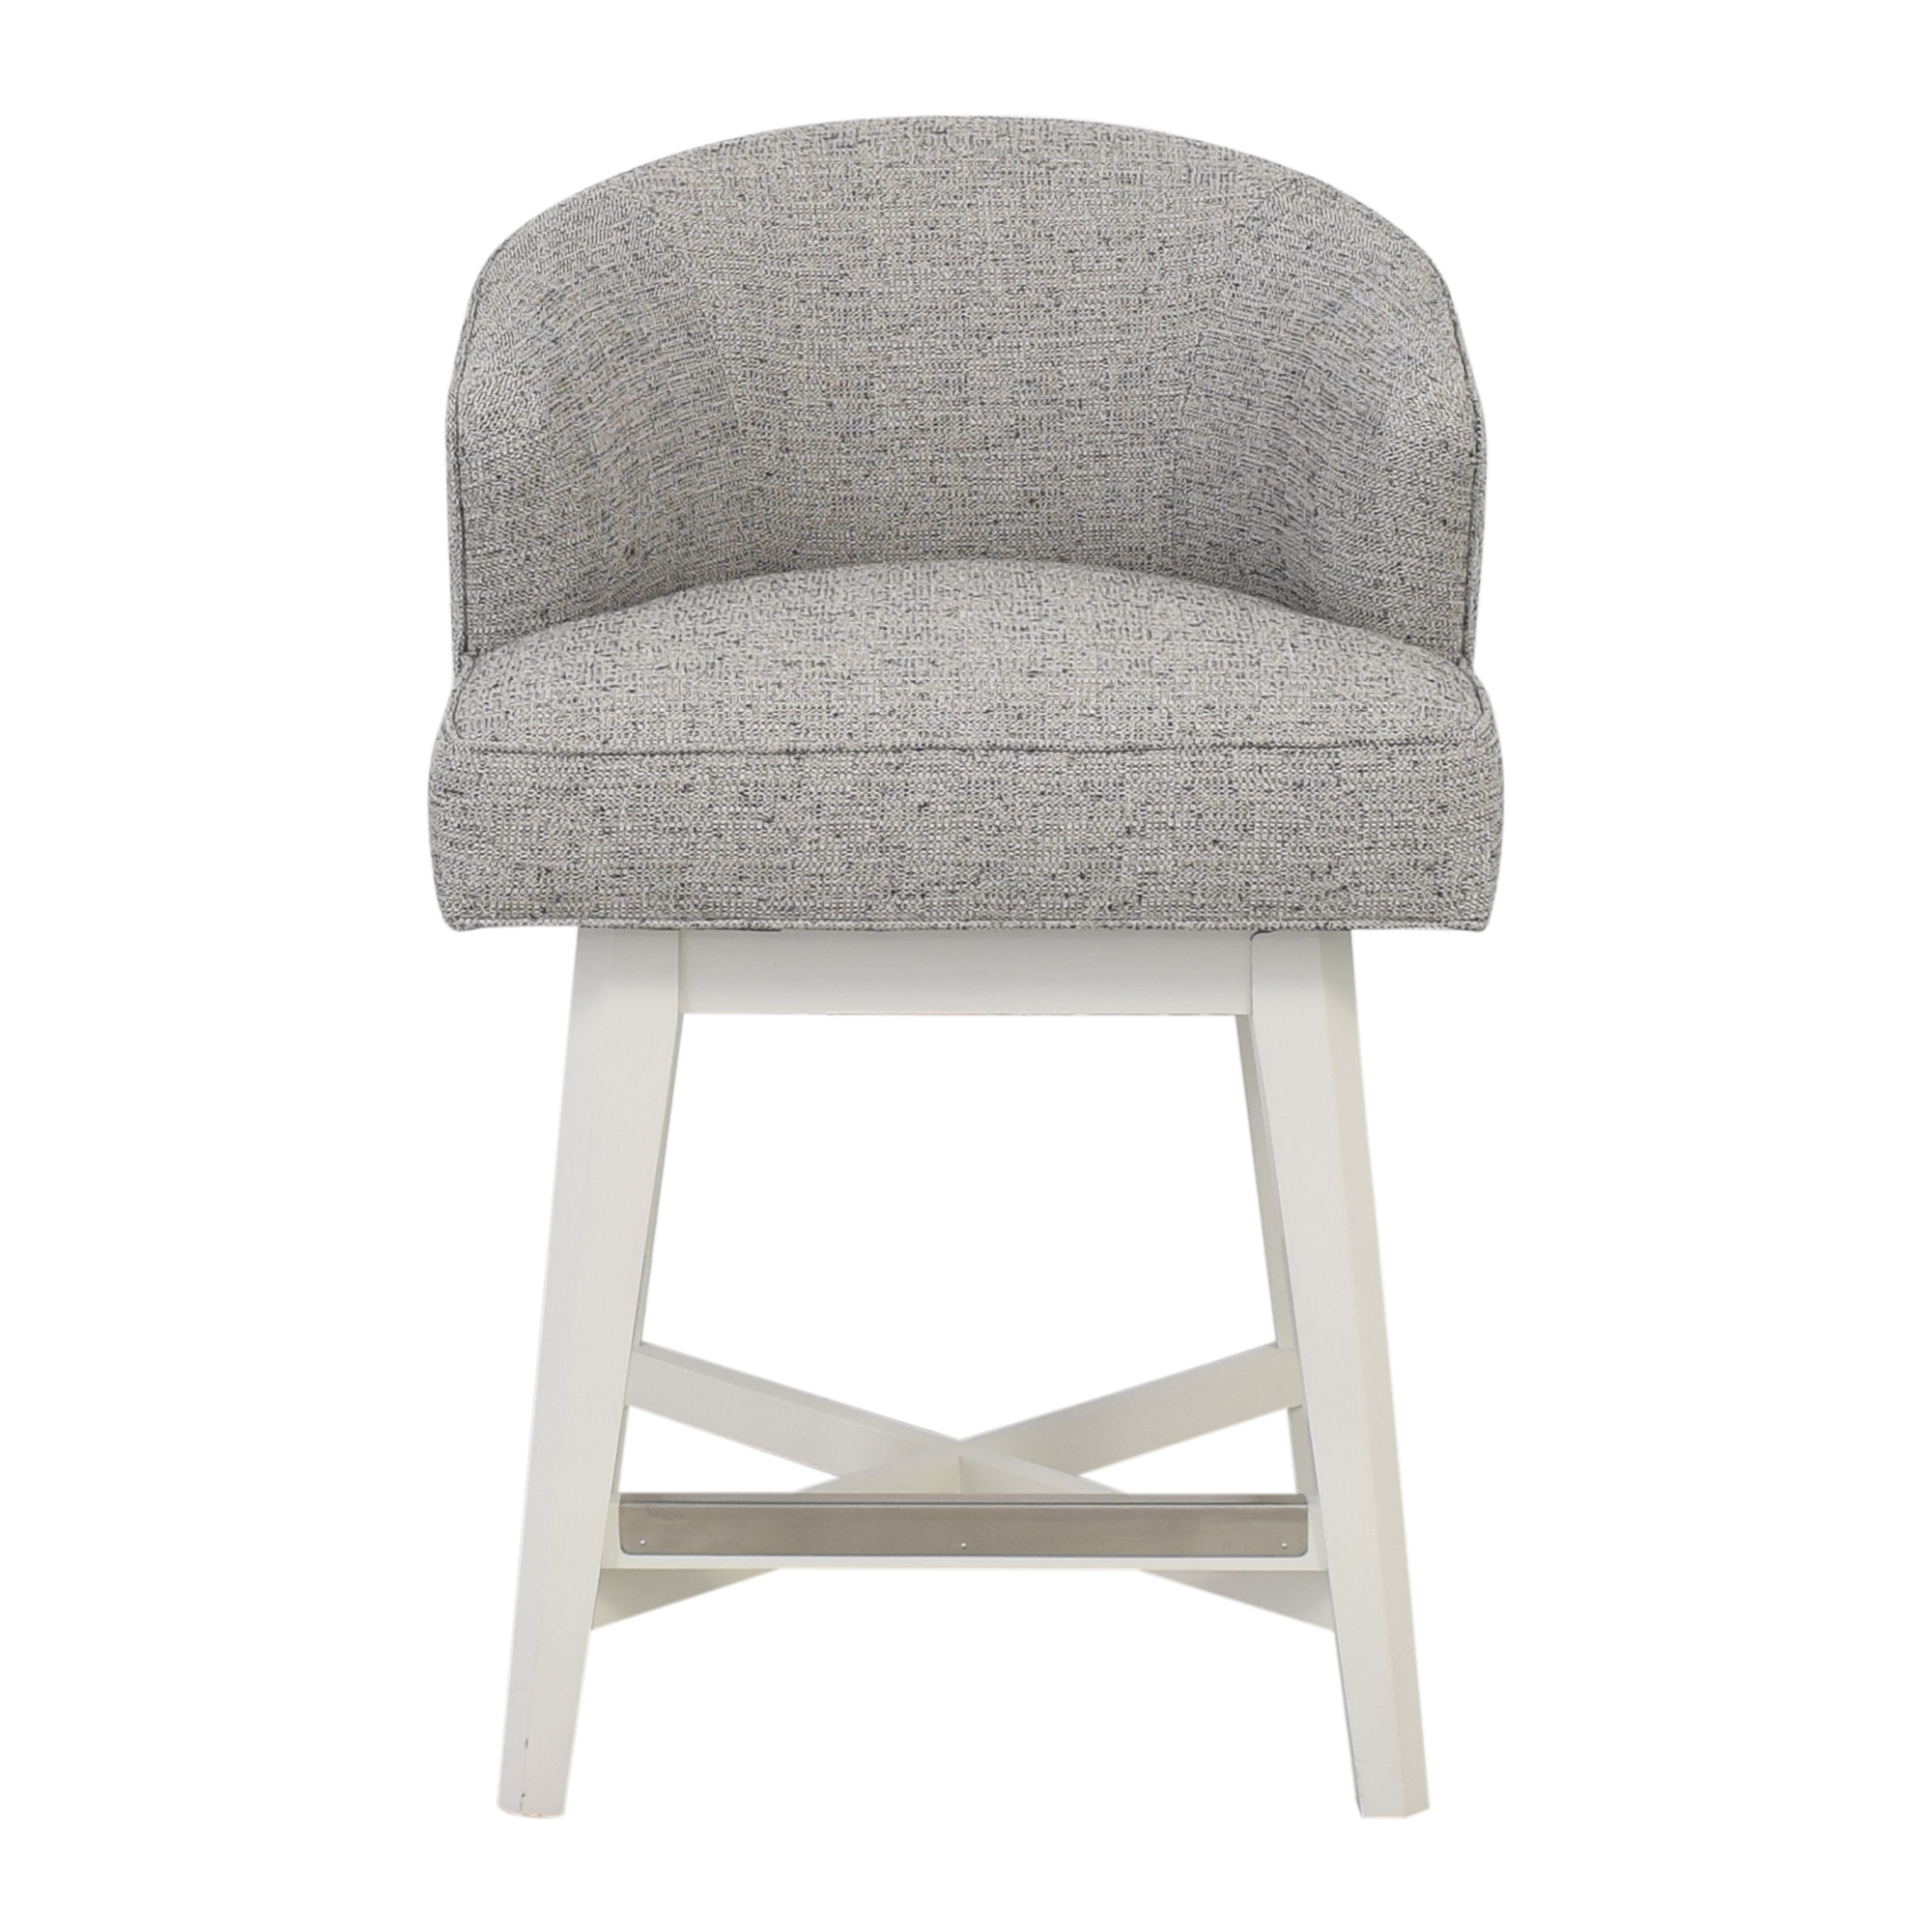 Vanguard Furniture Vanguard Clive Daniel Counter Stool grey & white